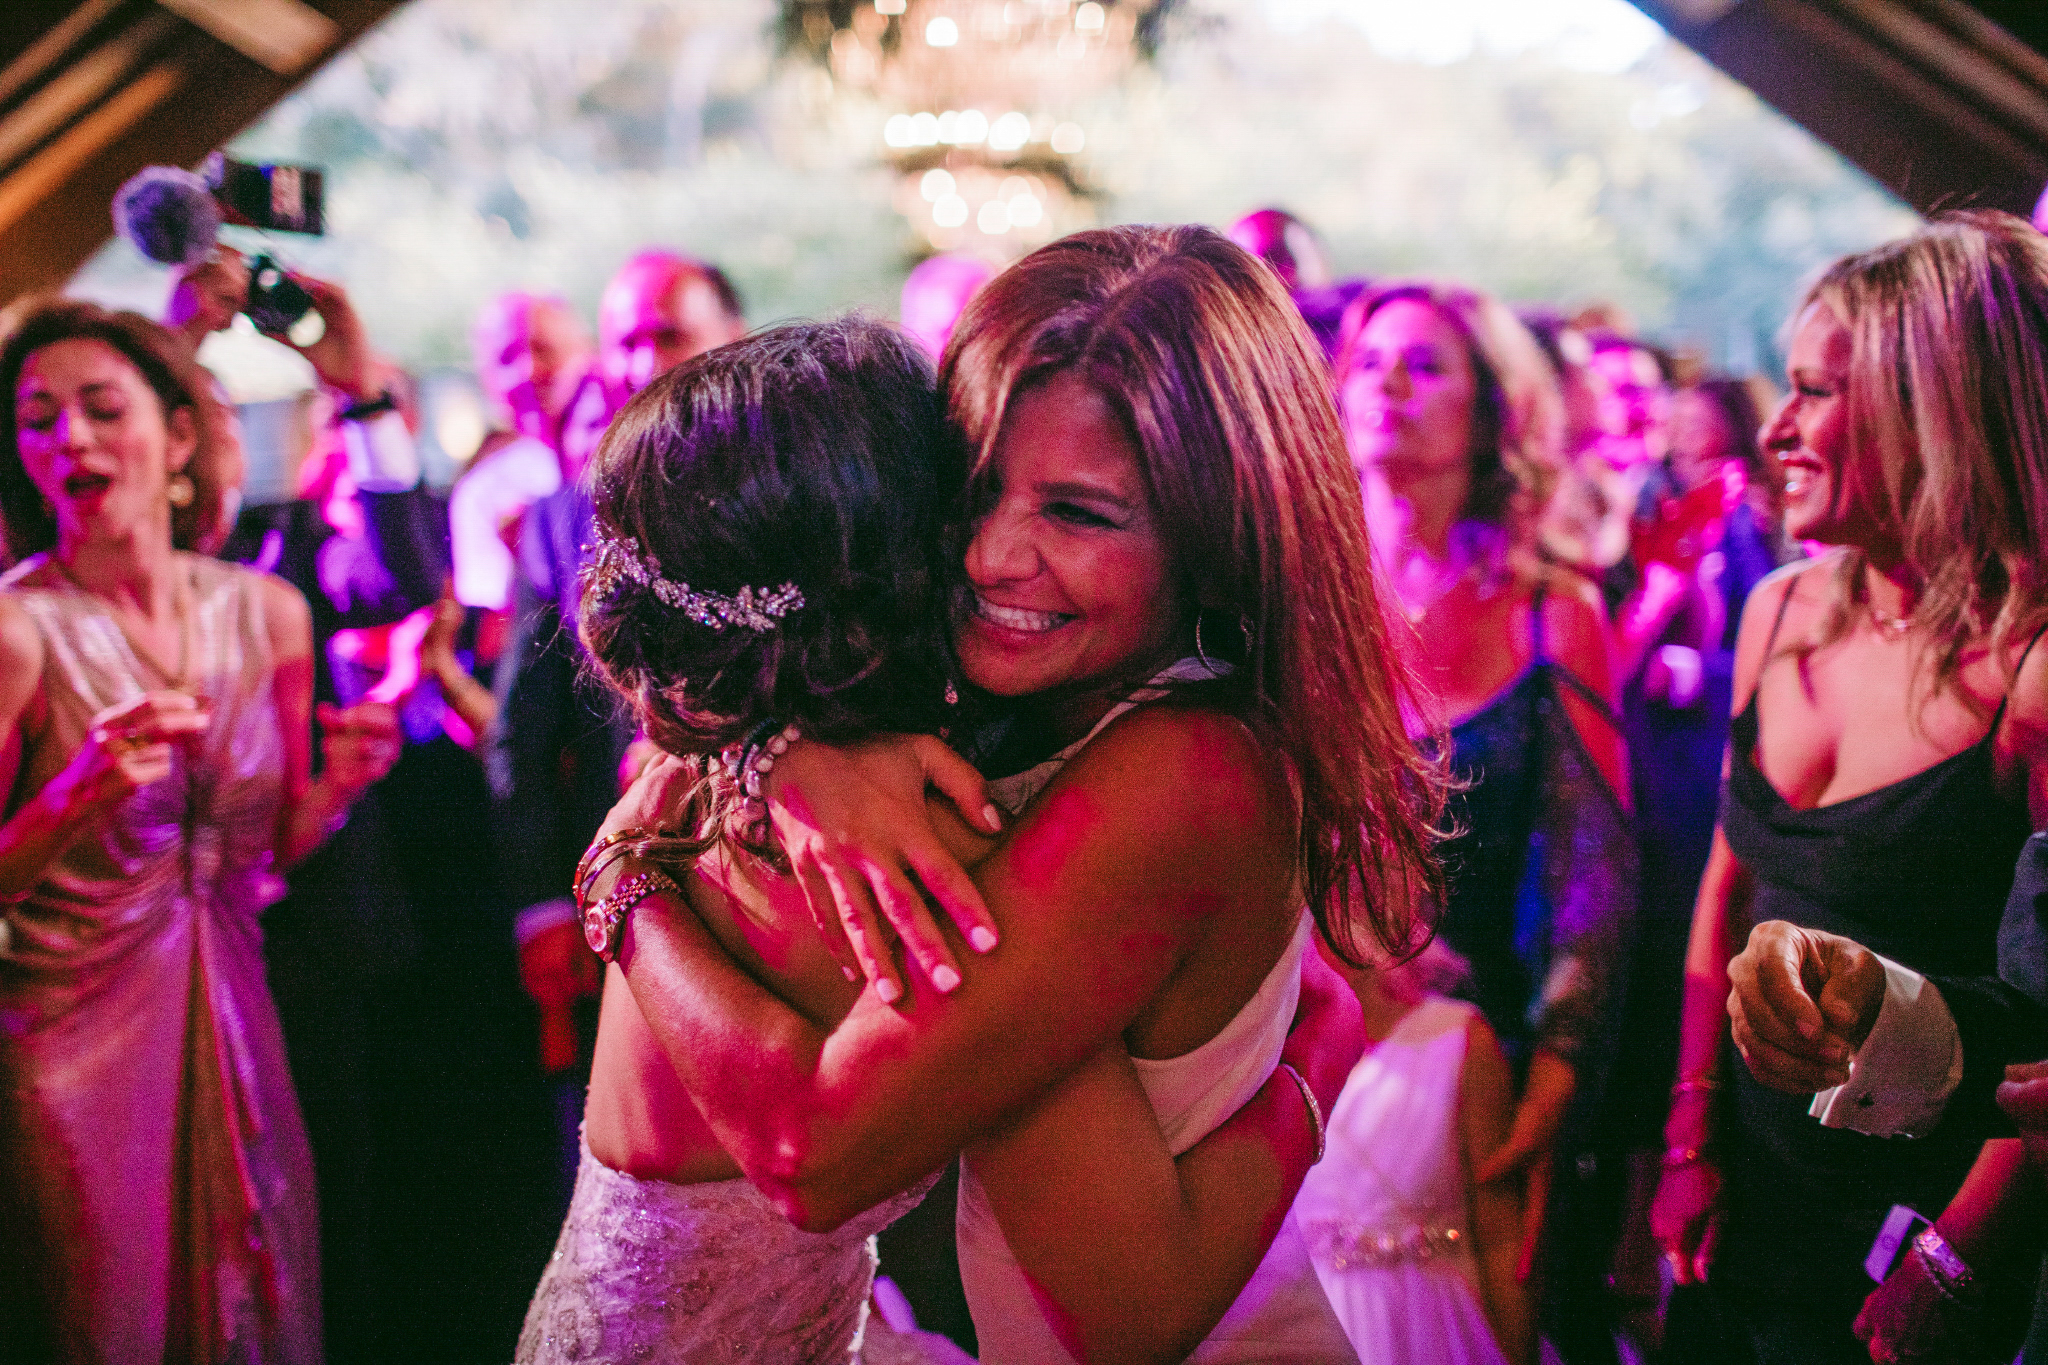 san diego wedding   photographer | man in white dress hugging bride with crowd of people behind   them illuminated with neon pink light